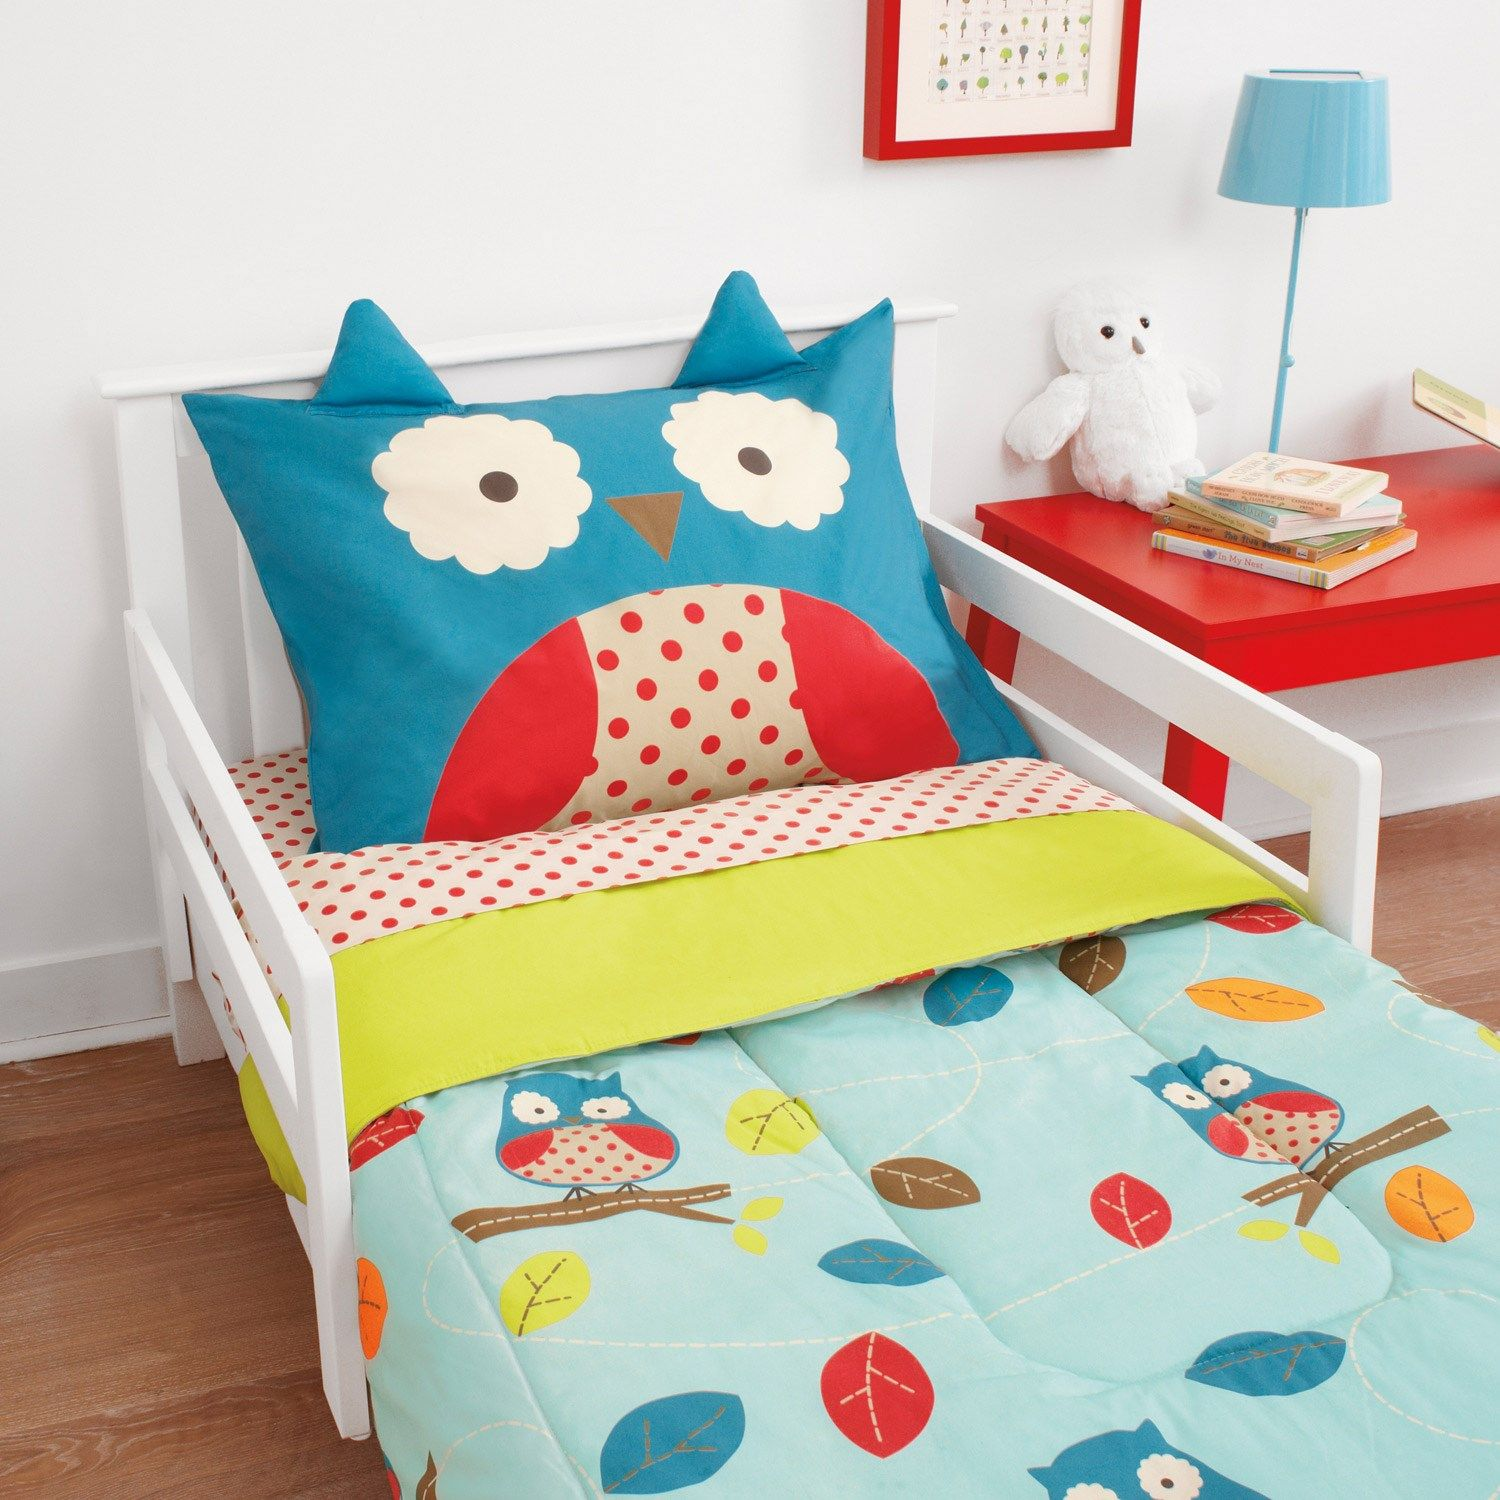 Dormitorios Infantiles Decoracion Skip Hop Toddler Bedding Set Owl Laylagrayce Kids Room